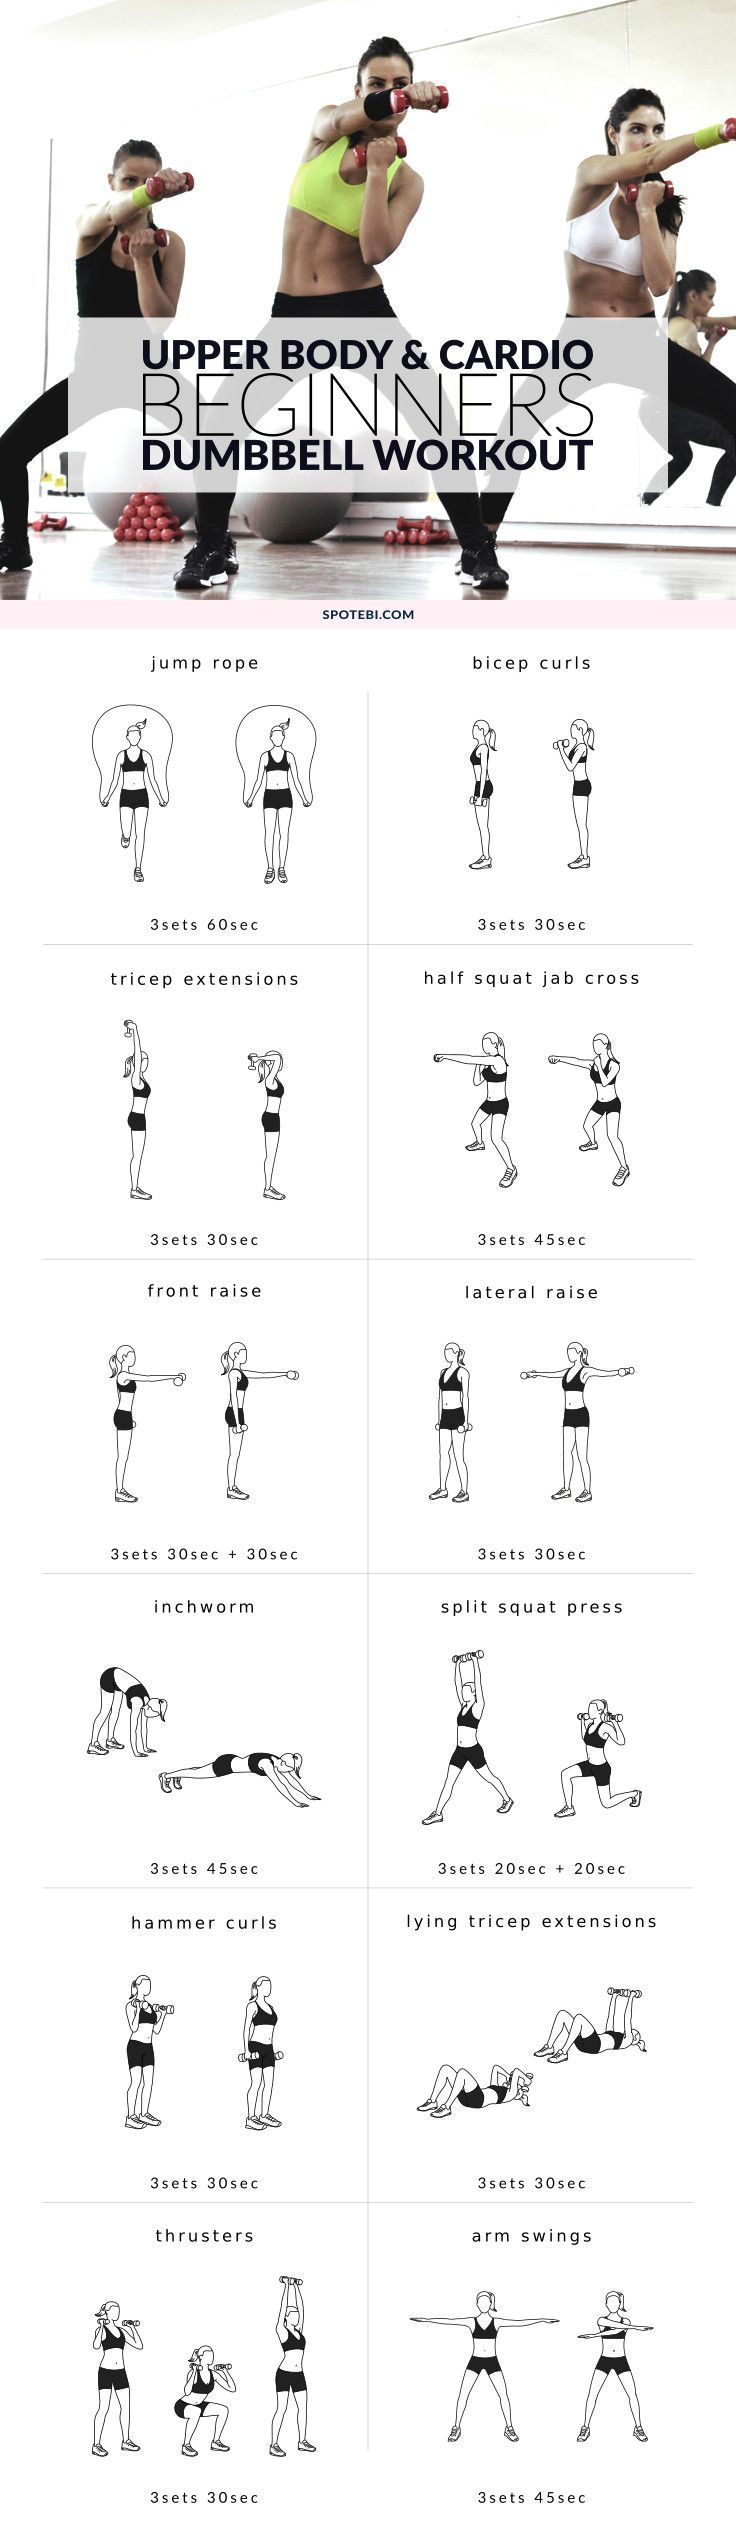 Upper Body and Cardio Beginner Dumbbell Workout | Posted By: NewHowToLoseBellyFat.com